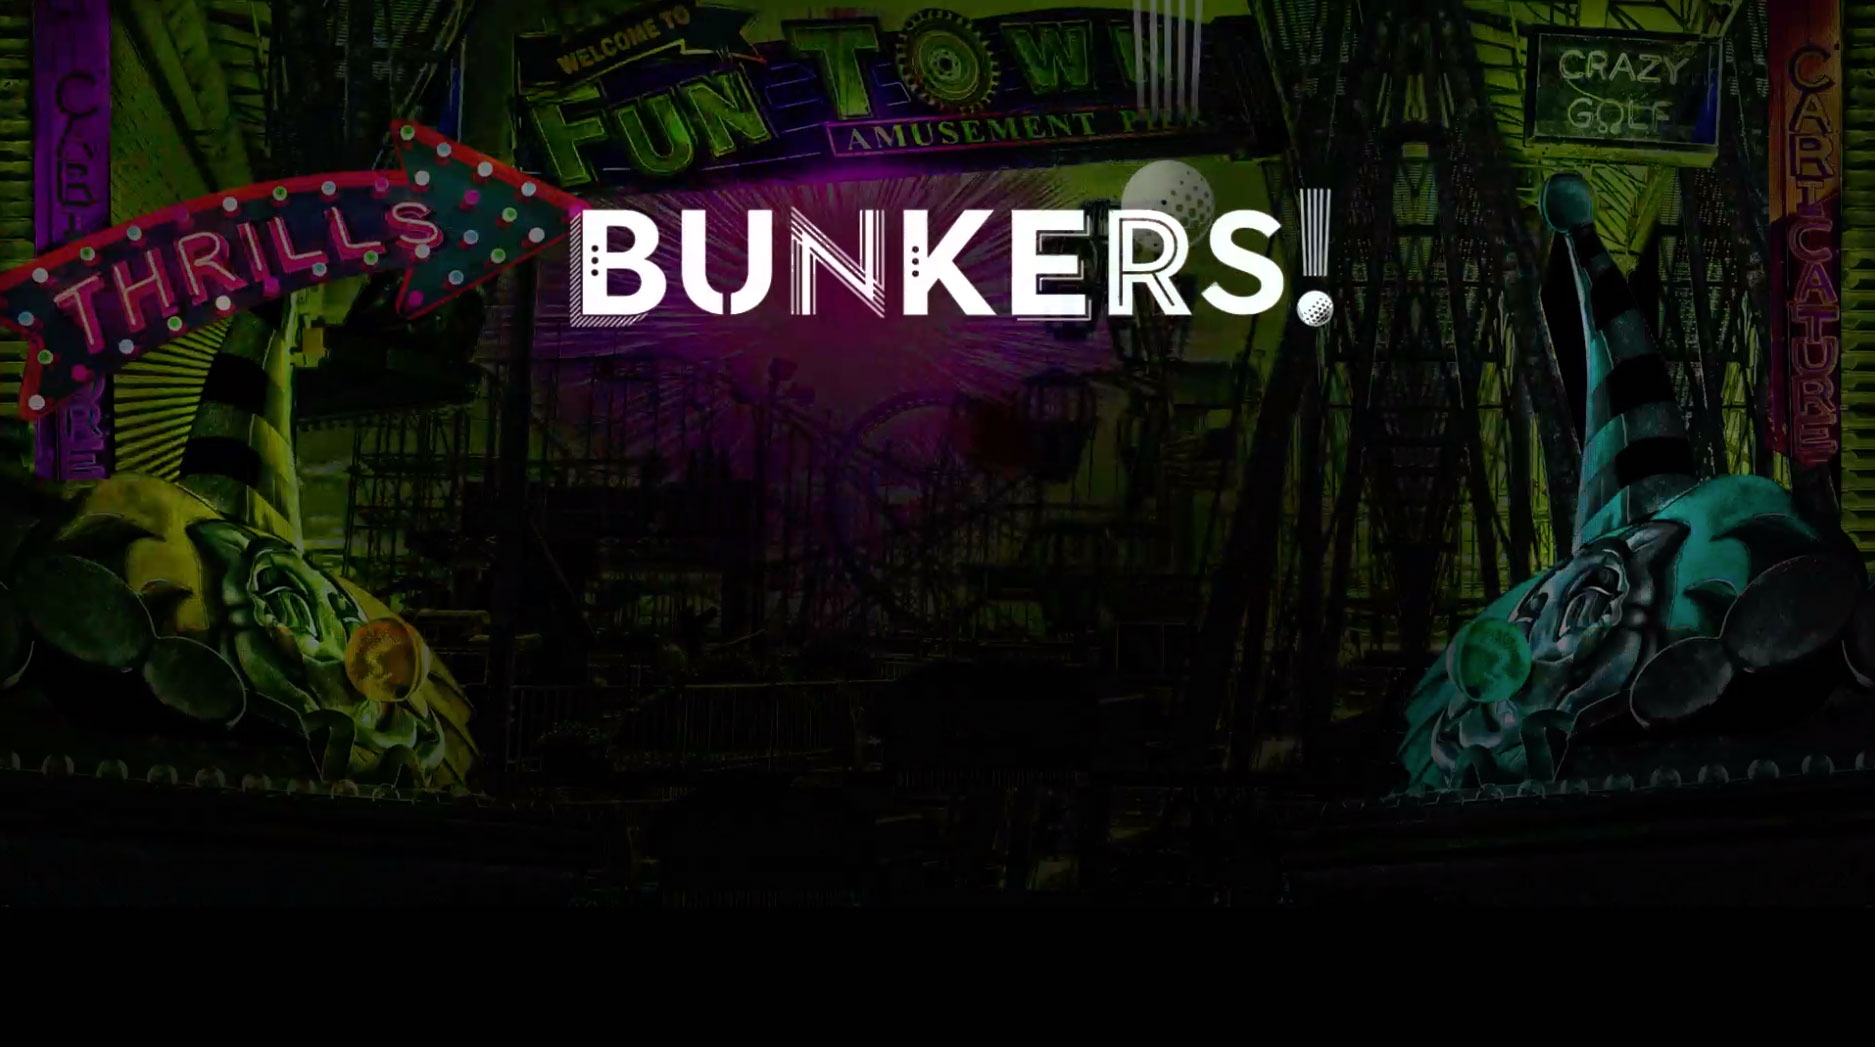 Bunkers Crazy Golf and Drinks